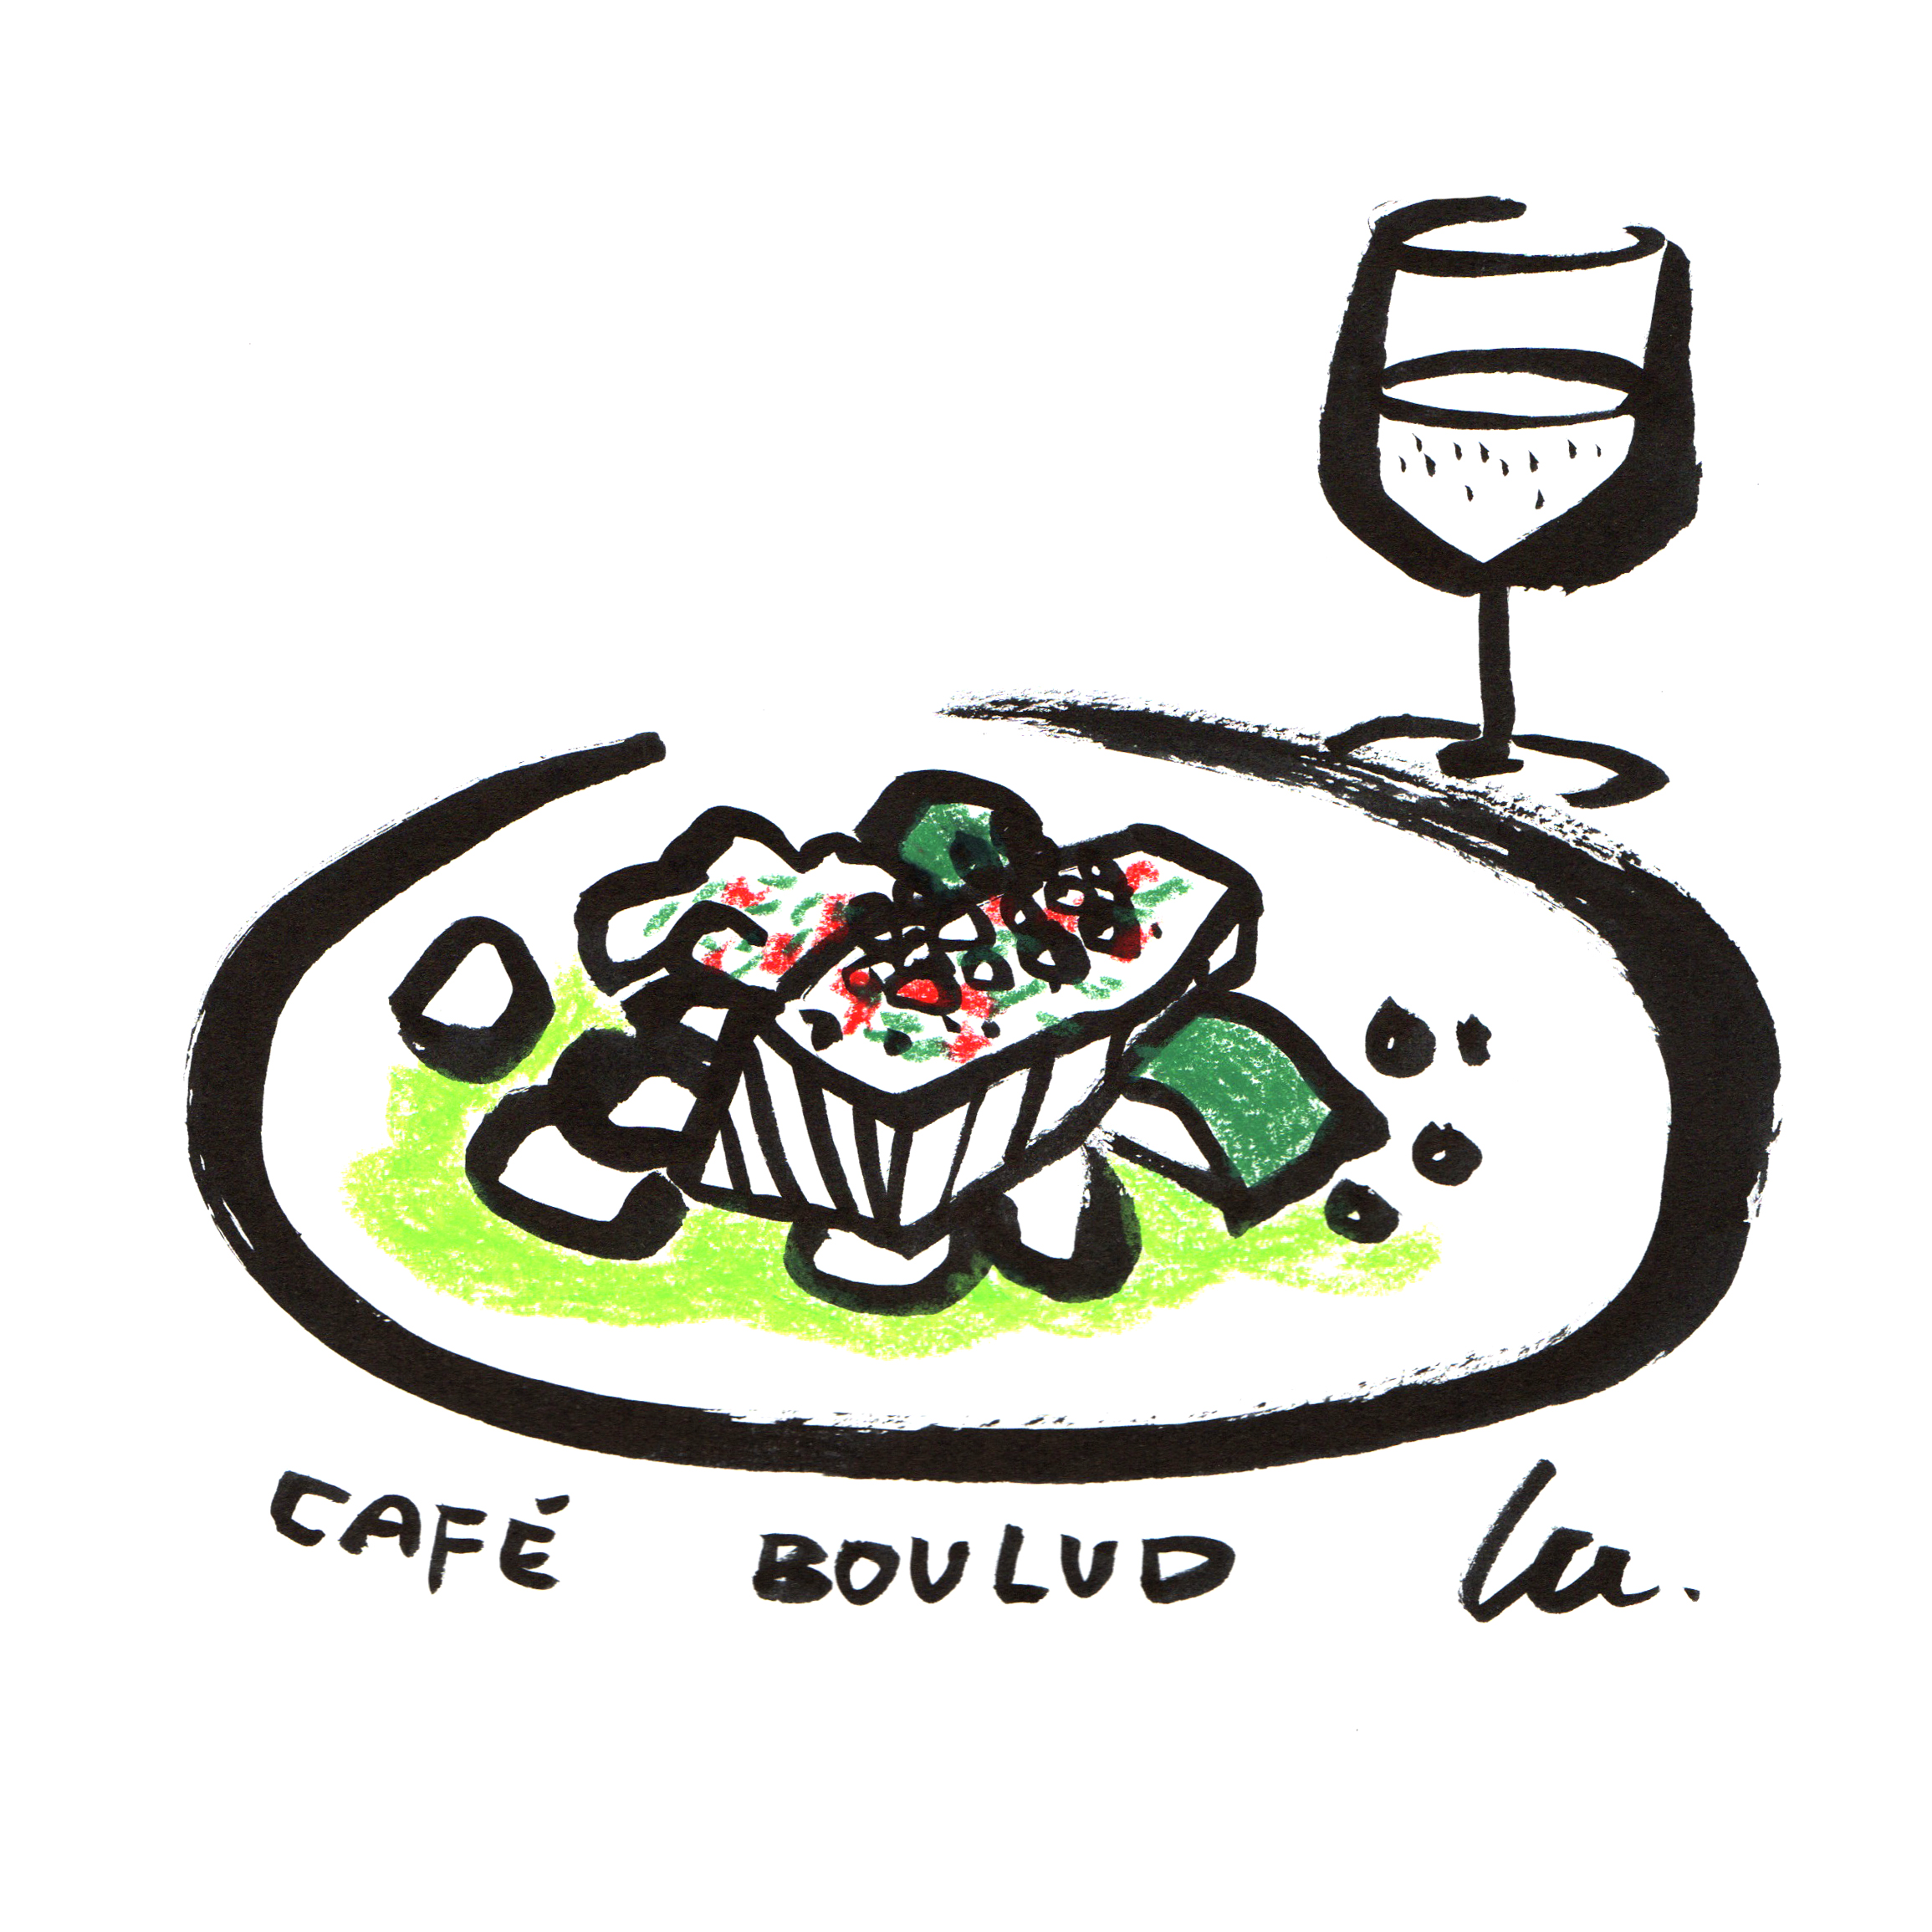 Cafe Boulud 2.jpeg